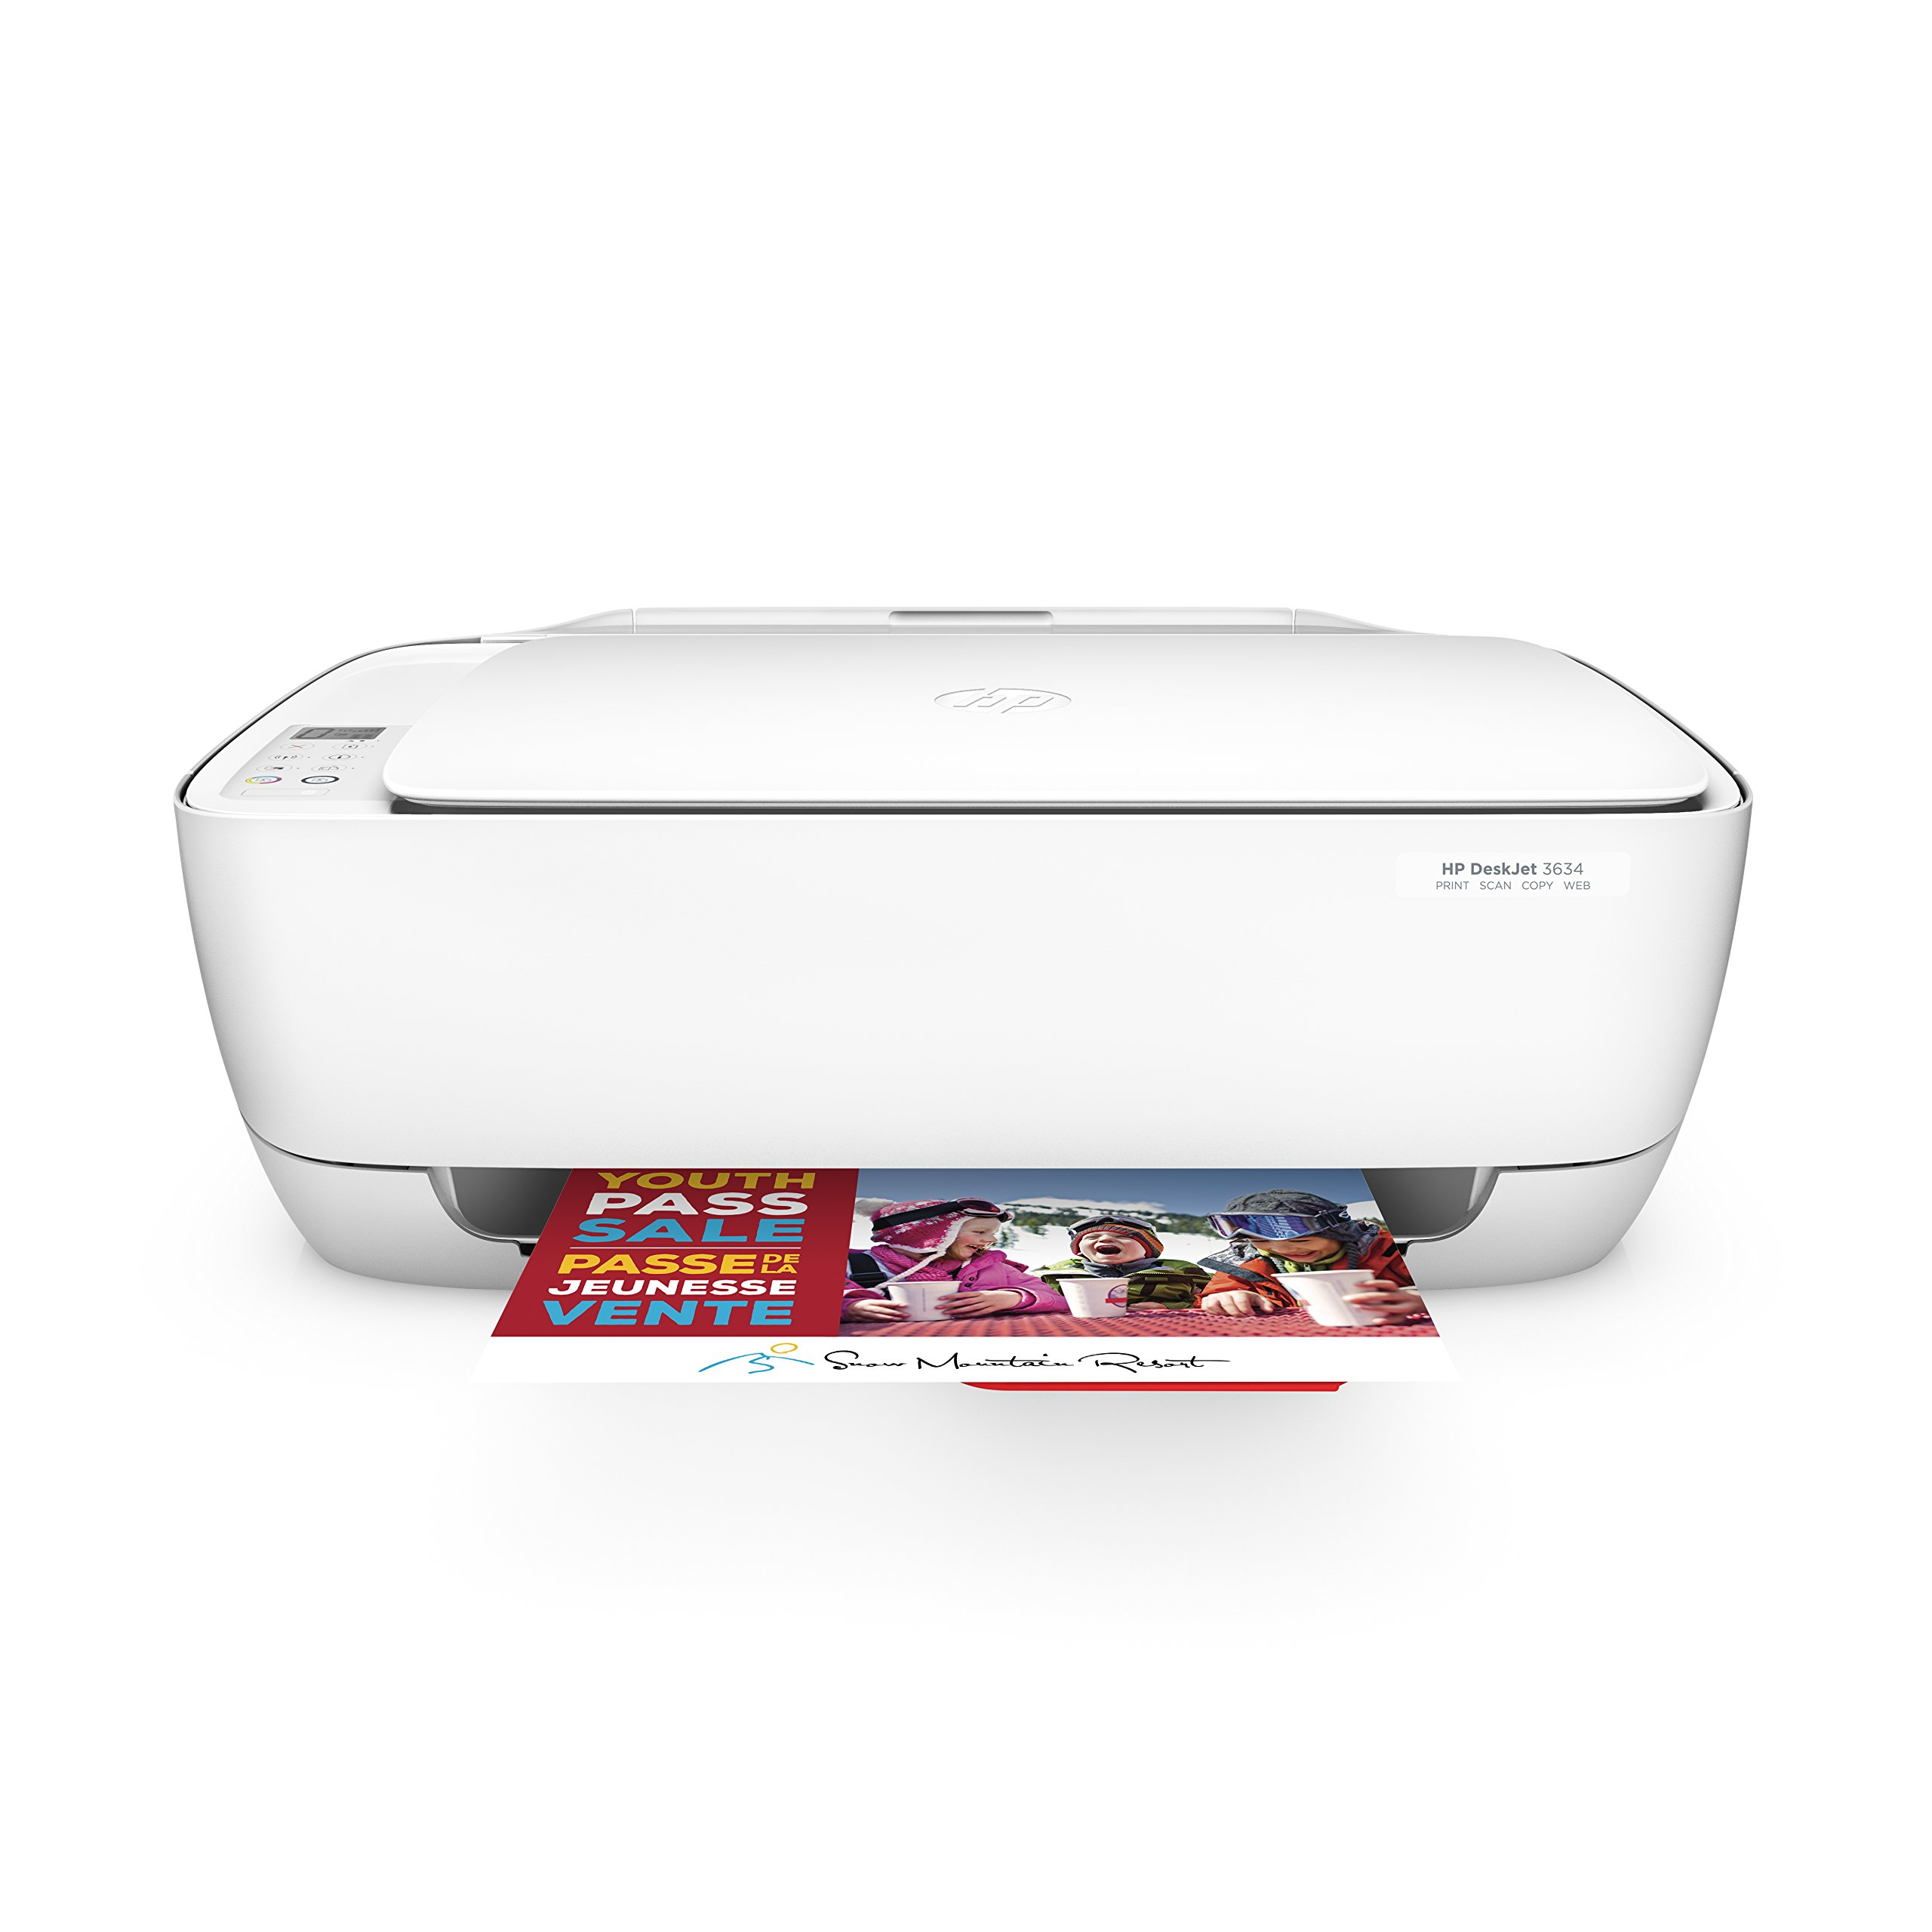 HP DeskJet 3634 Compact All-in-One Wireless Printer with Mobile Printing, HP Instant Ink & Amazon Dash Replenishment ready (K4T93A) by HP (Image #1)